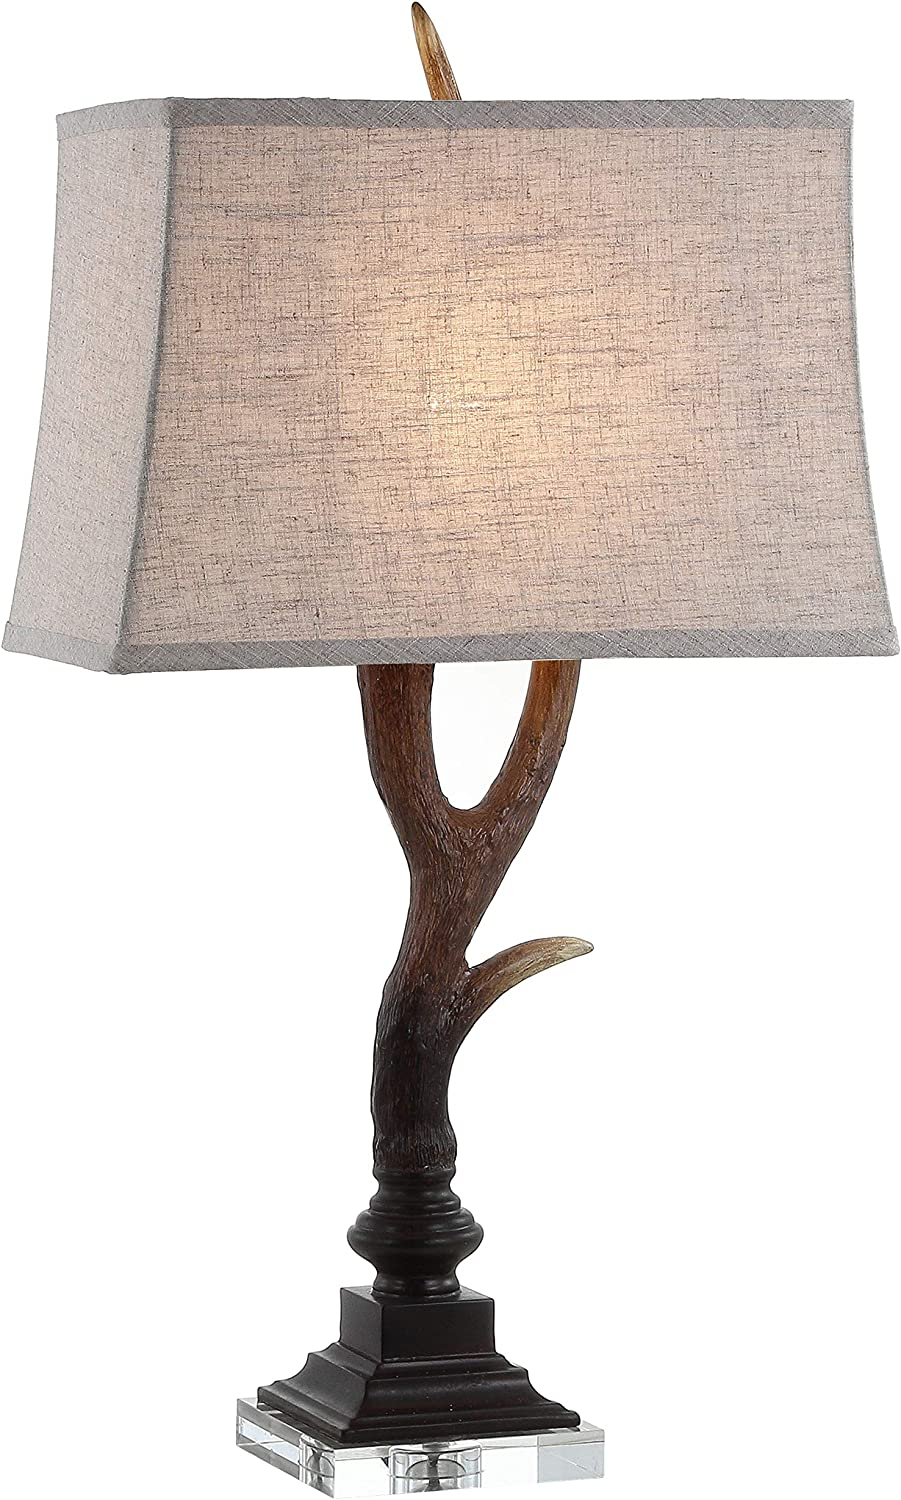 """JONATHAN Y JYL6306A Antler 29.5"""" Rustic Resin/Crystal LED Lamp Traditional for Bedroom, Living Room, Office, College Dorm, Coffee Table, Bookcase, Brown"""